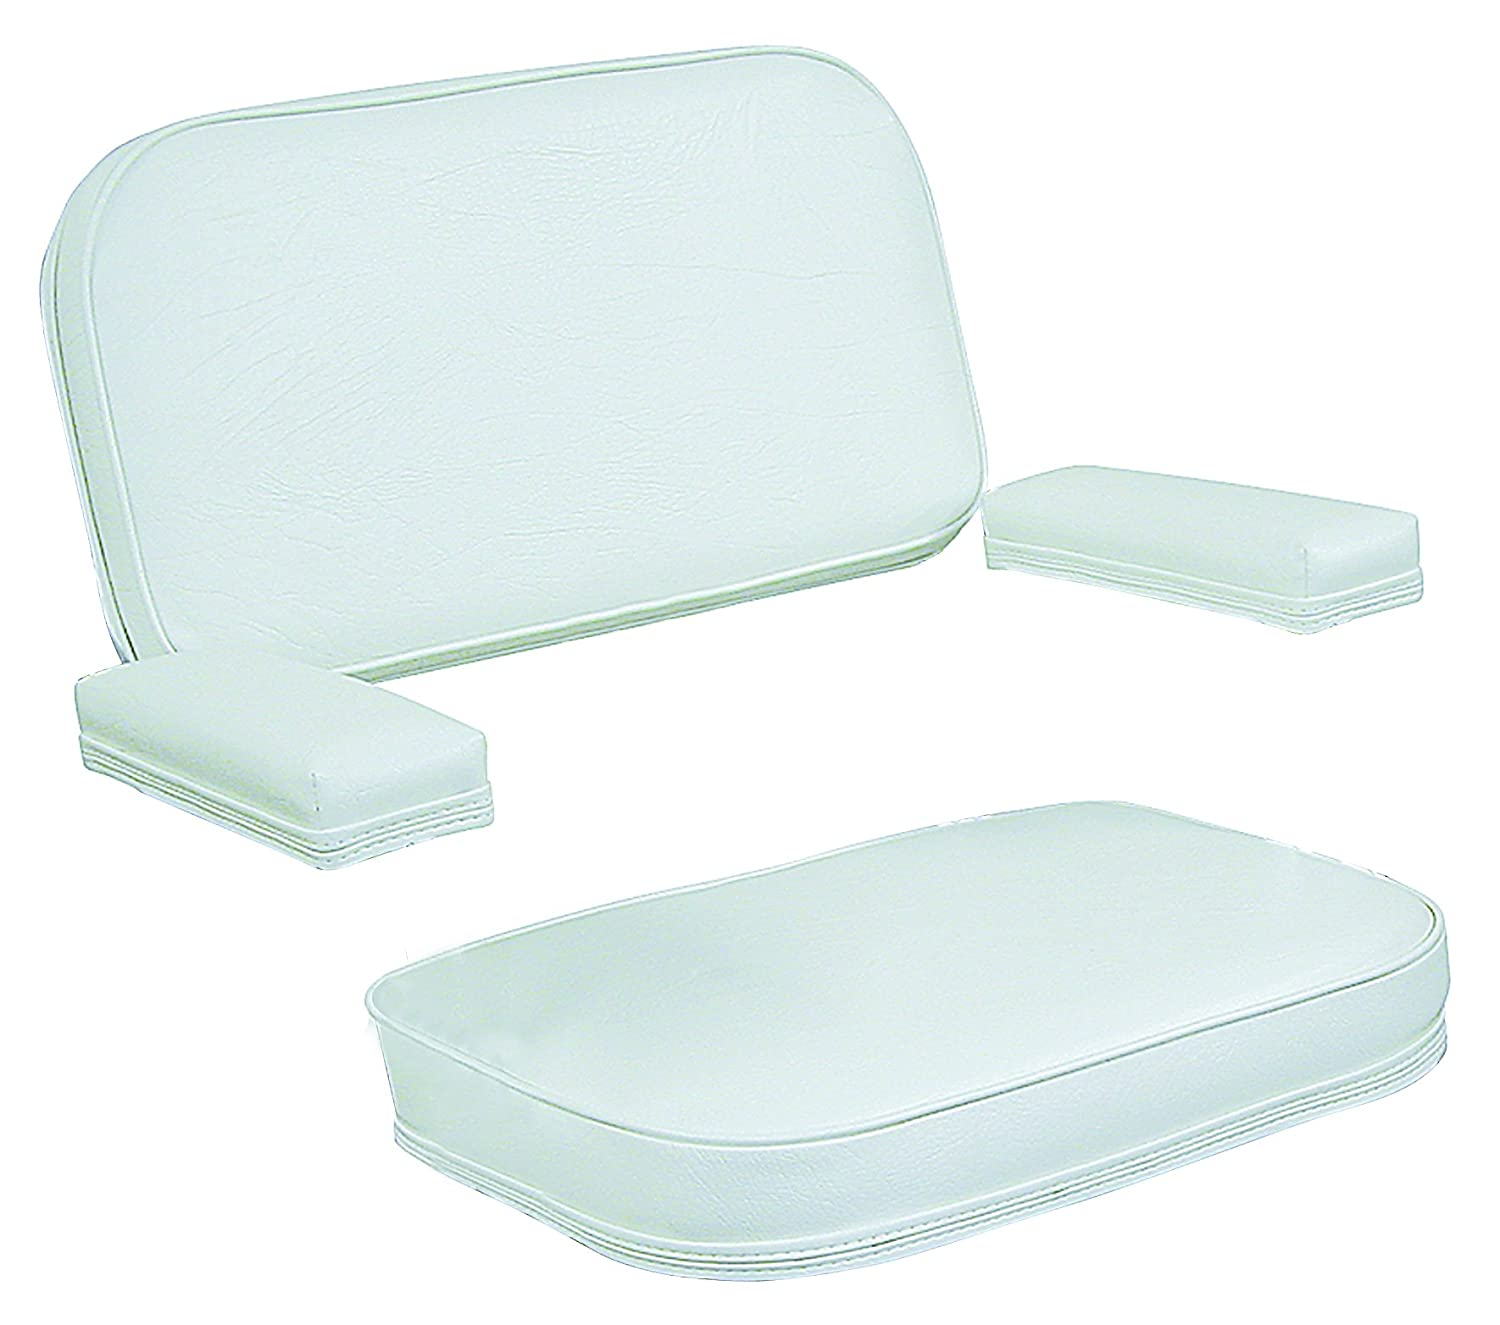 Beautiful Amazon.com : Wise 120AB Series Deck Chair Replacement Cushions And Arm  Pads, White : Sports U0026 Outdoors